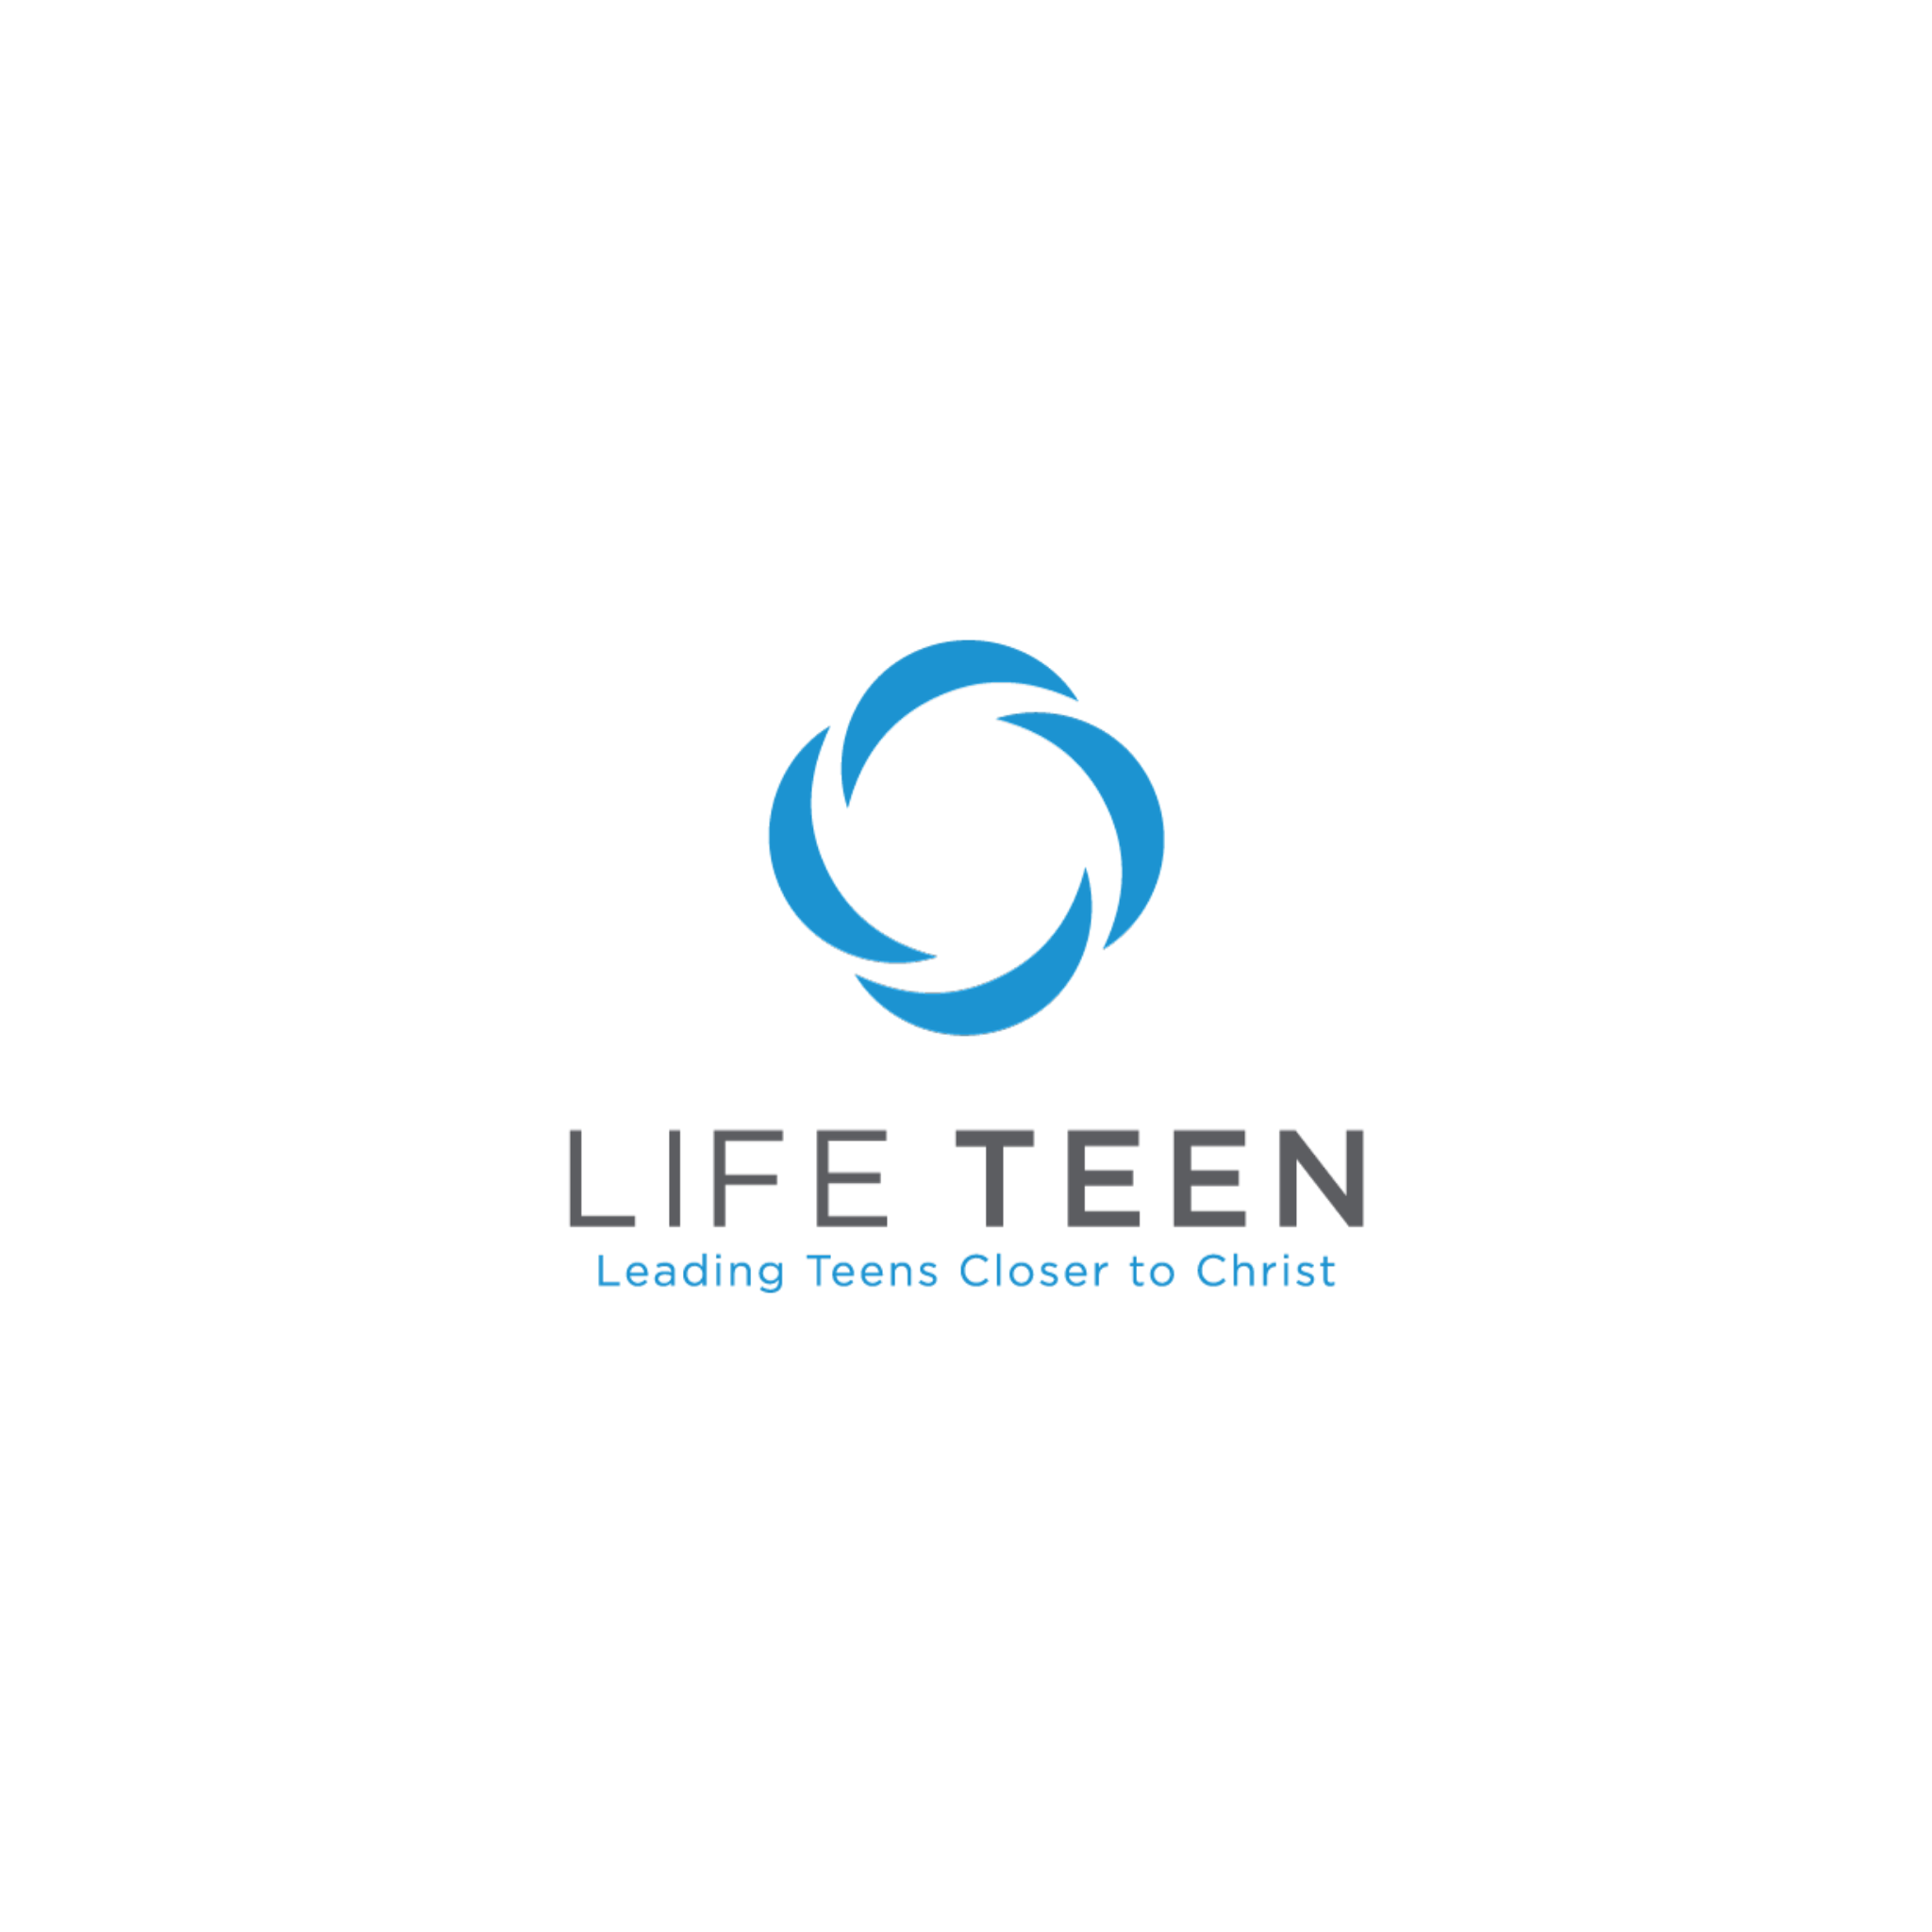 Lifeteen Youth Ministry